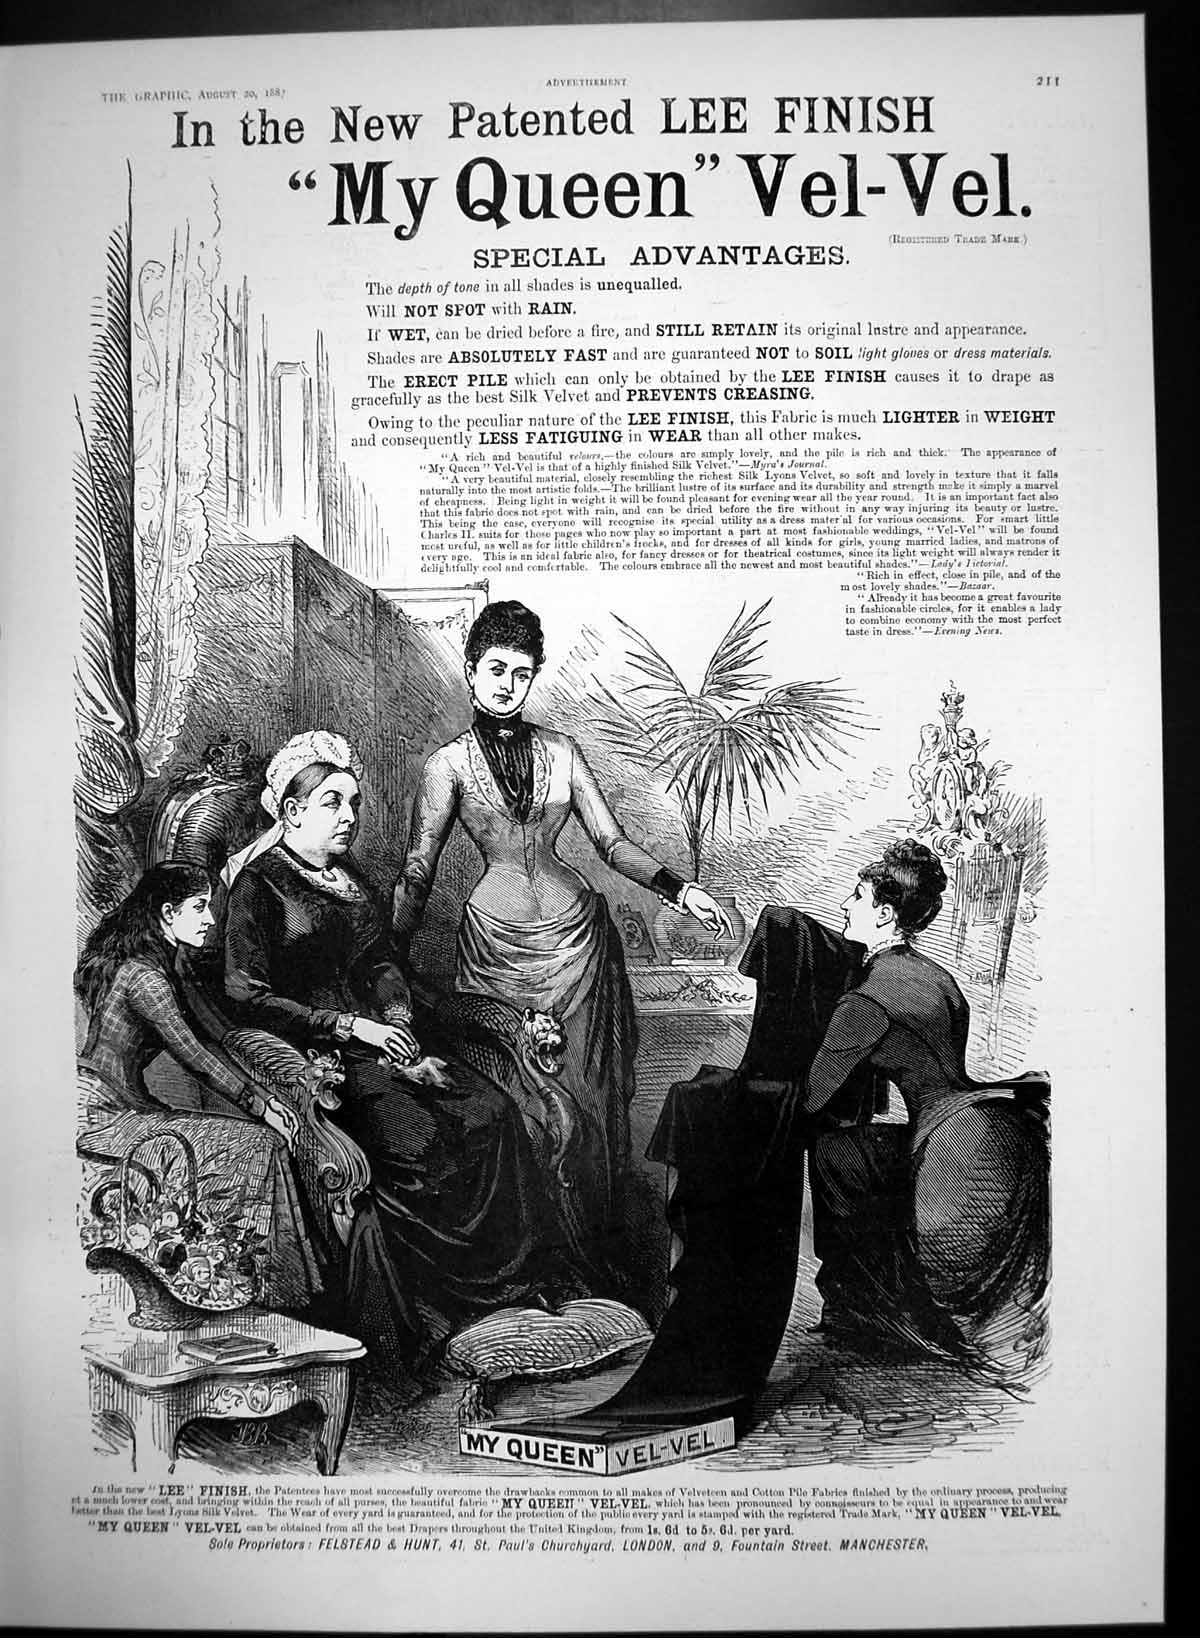 Original-Old-Antique-Print-My-Queen-Vel-Vel-Retains-Lustre-Appearance-1887-19th